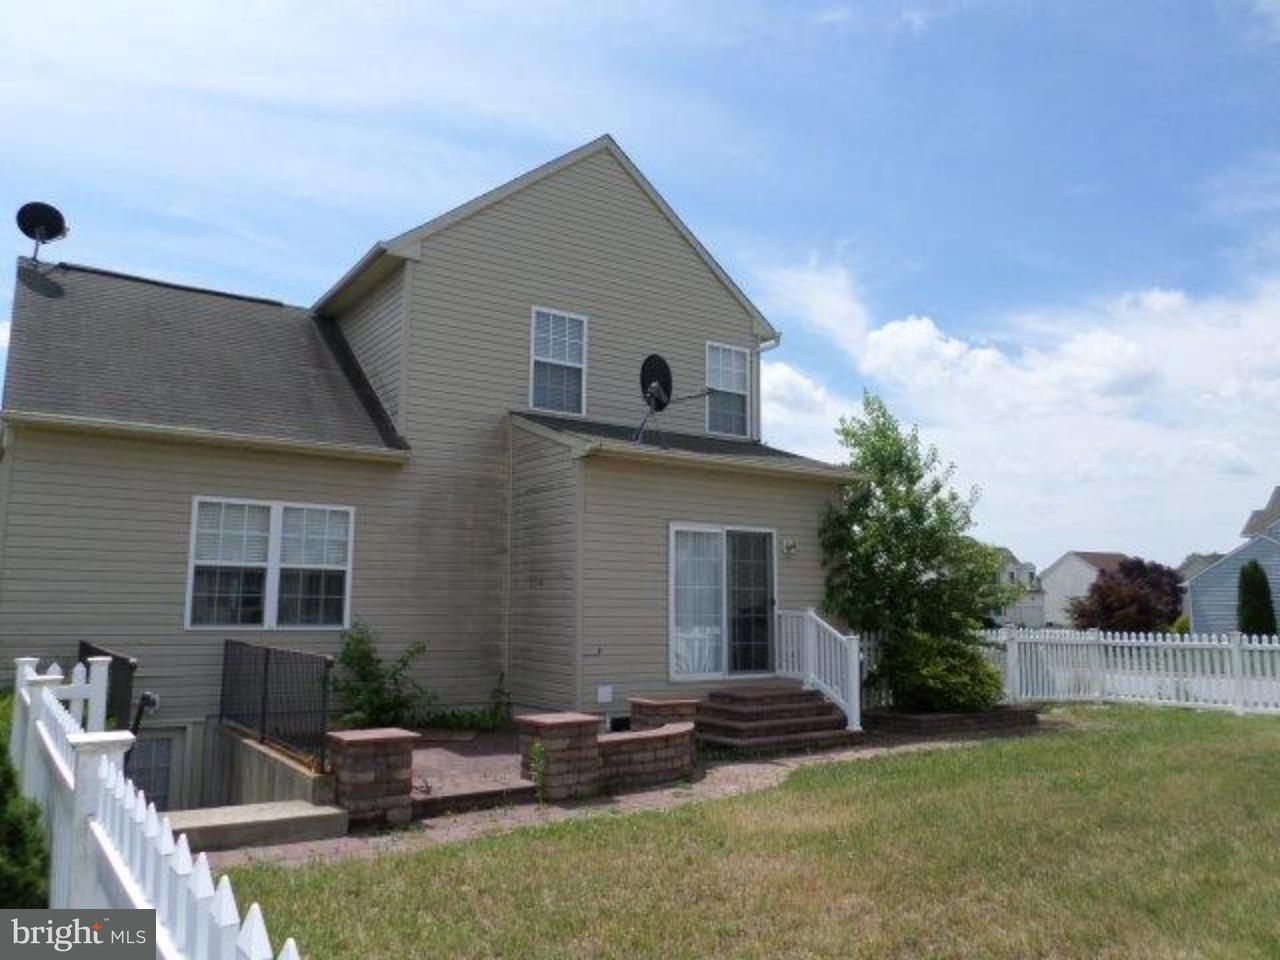 Single Family Home for Rent at 5 WHEELER Circle Smyrna, Delaware 19977 United States